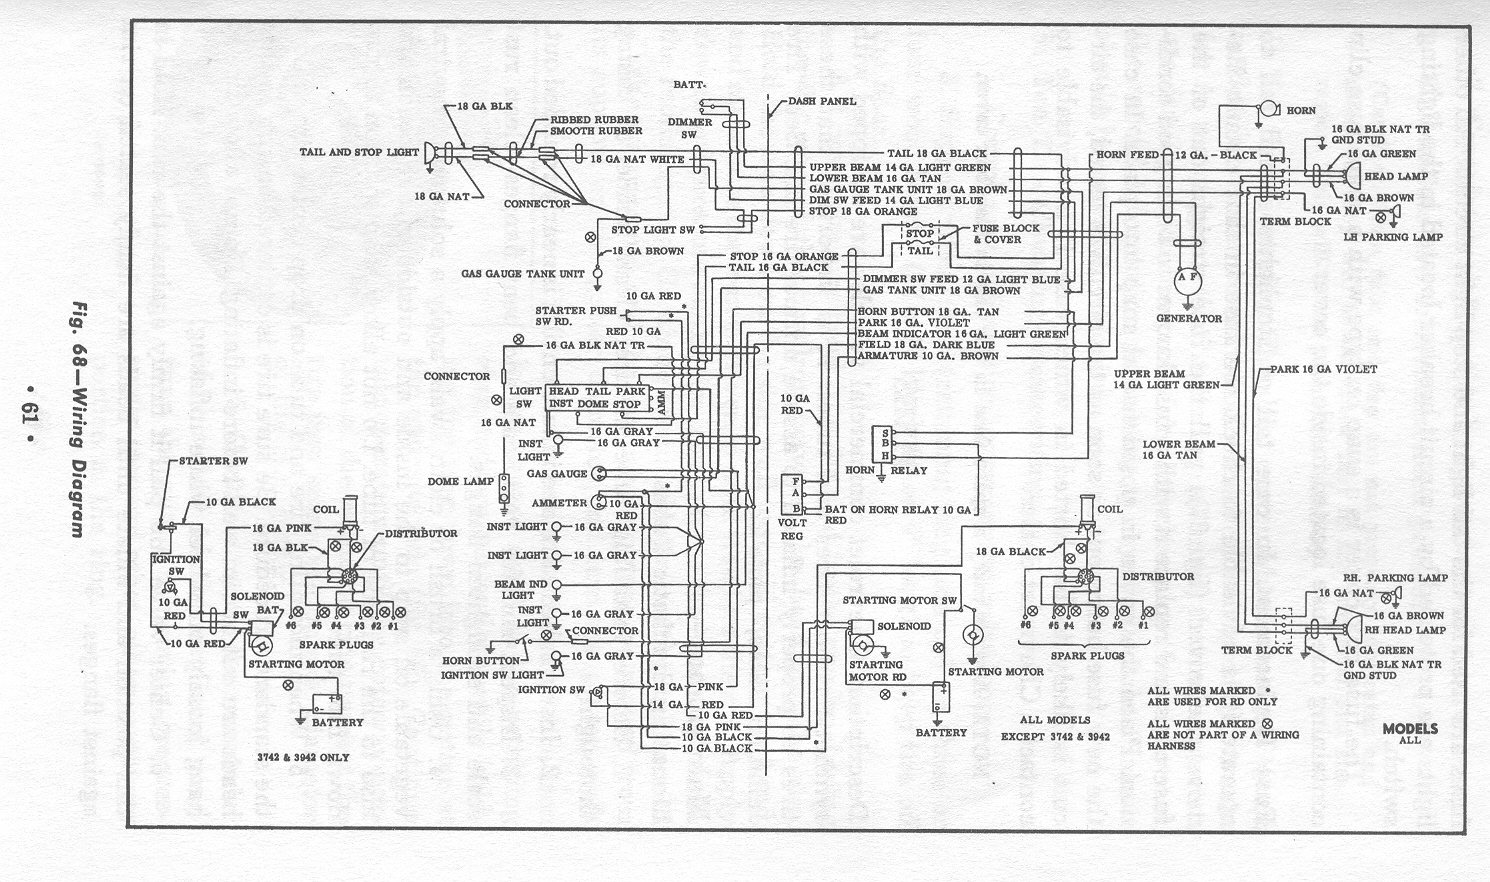 1965 gm stereo wiring diagram wiring diagram mega 1965 gm stereo wiring diagram wiring library 1965 gm stereo wiring diagram